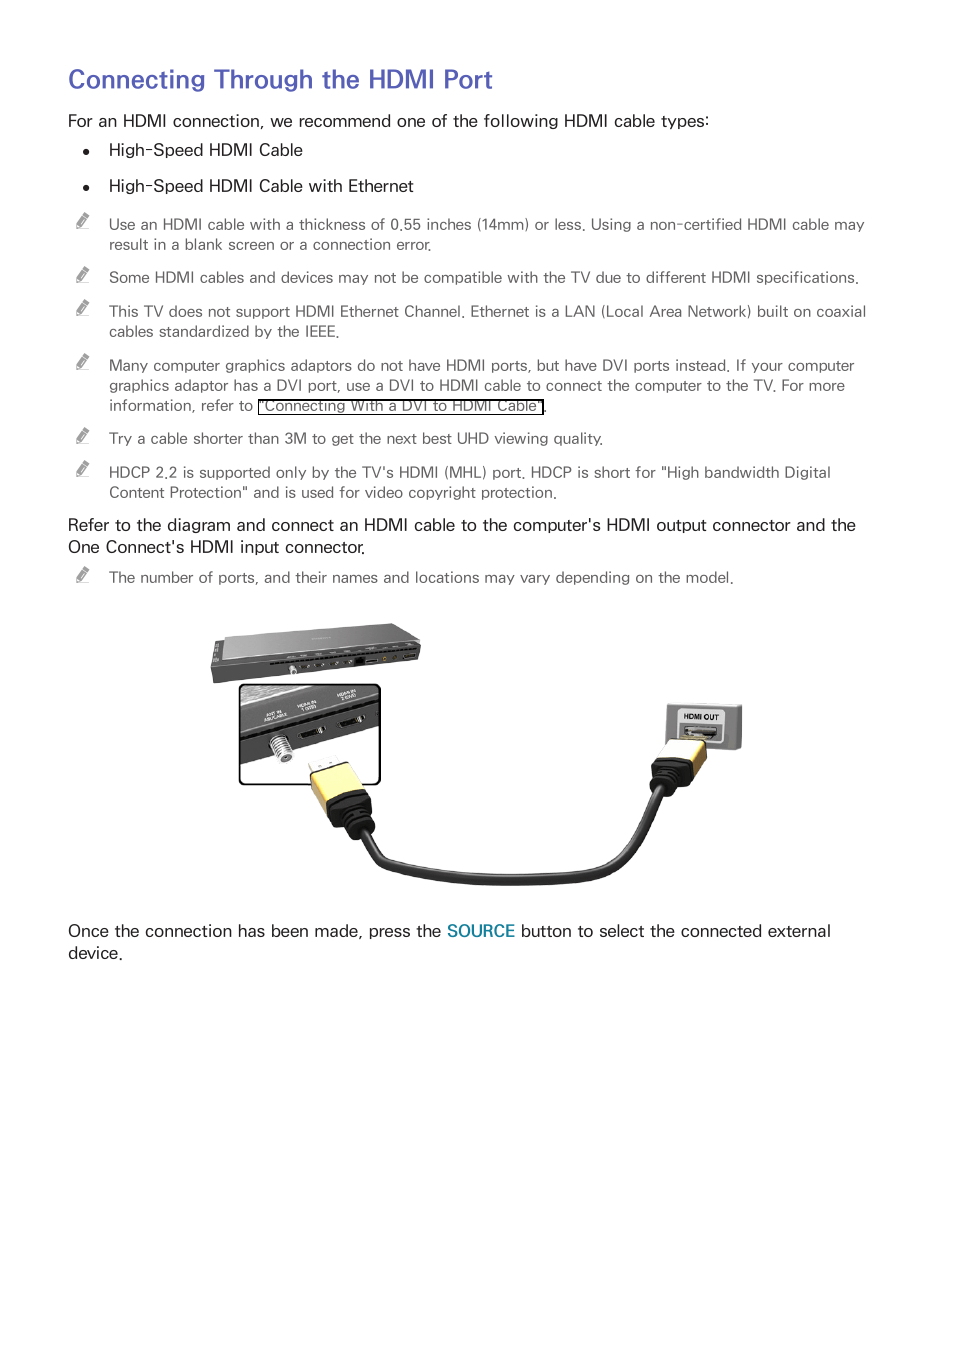 medium resolution of connecting through the hdmi port samsung un78hu9000fxza user manual page 22 244